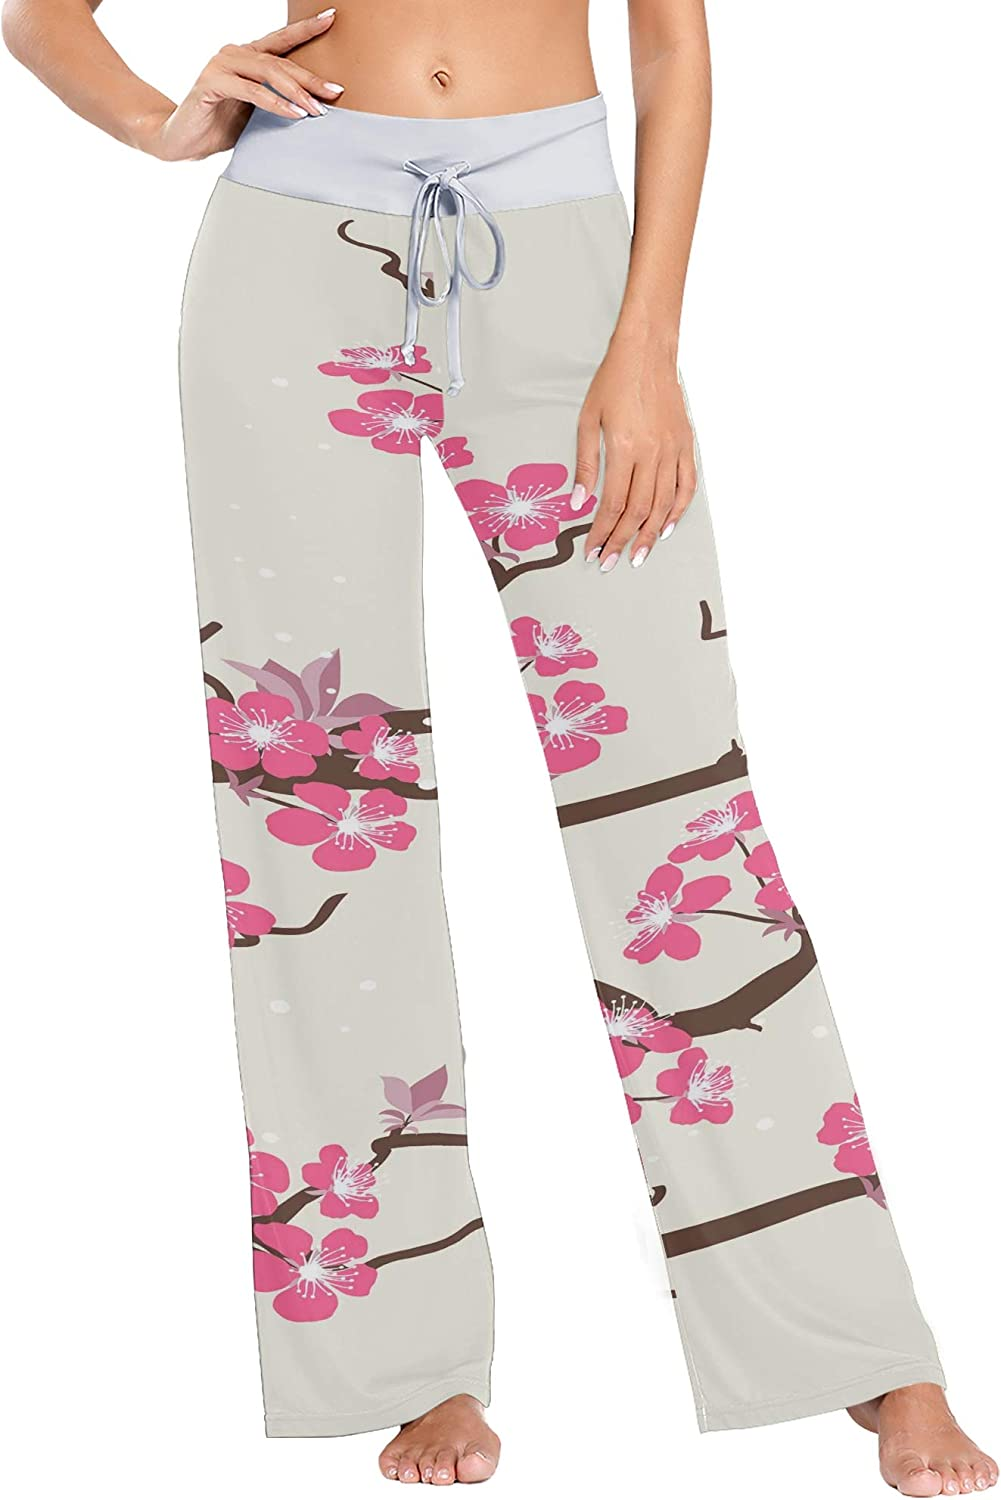 Ladies Bargain Pajama Long-awaited Bottoms Card with Flowers Cherry Blossom Stylized